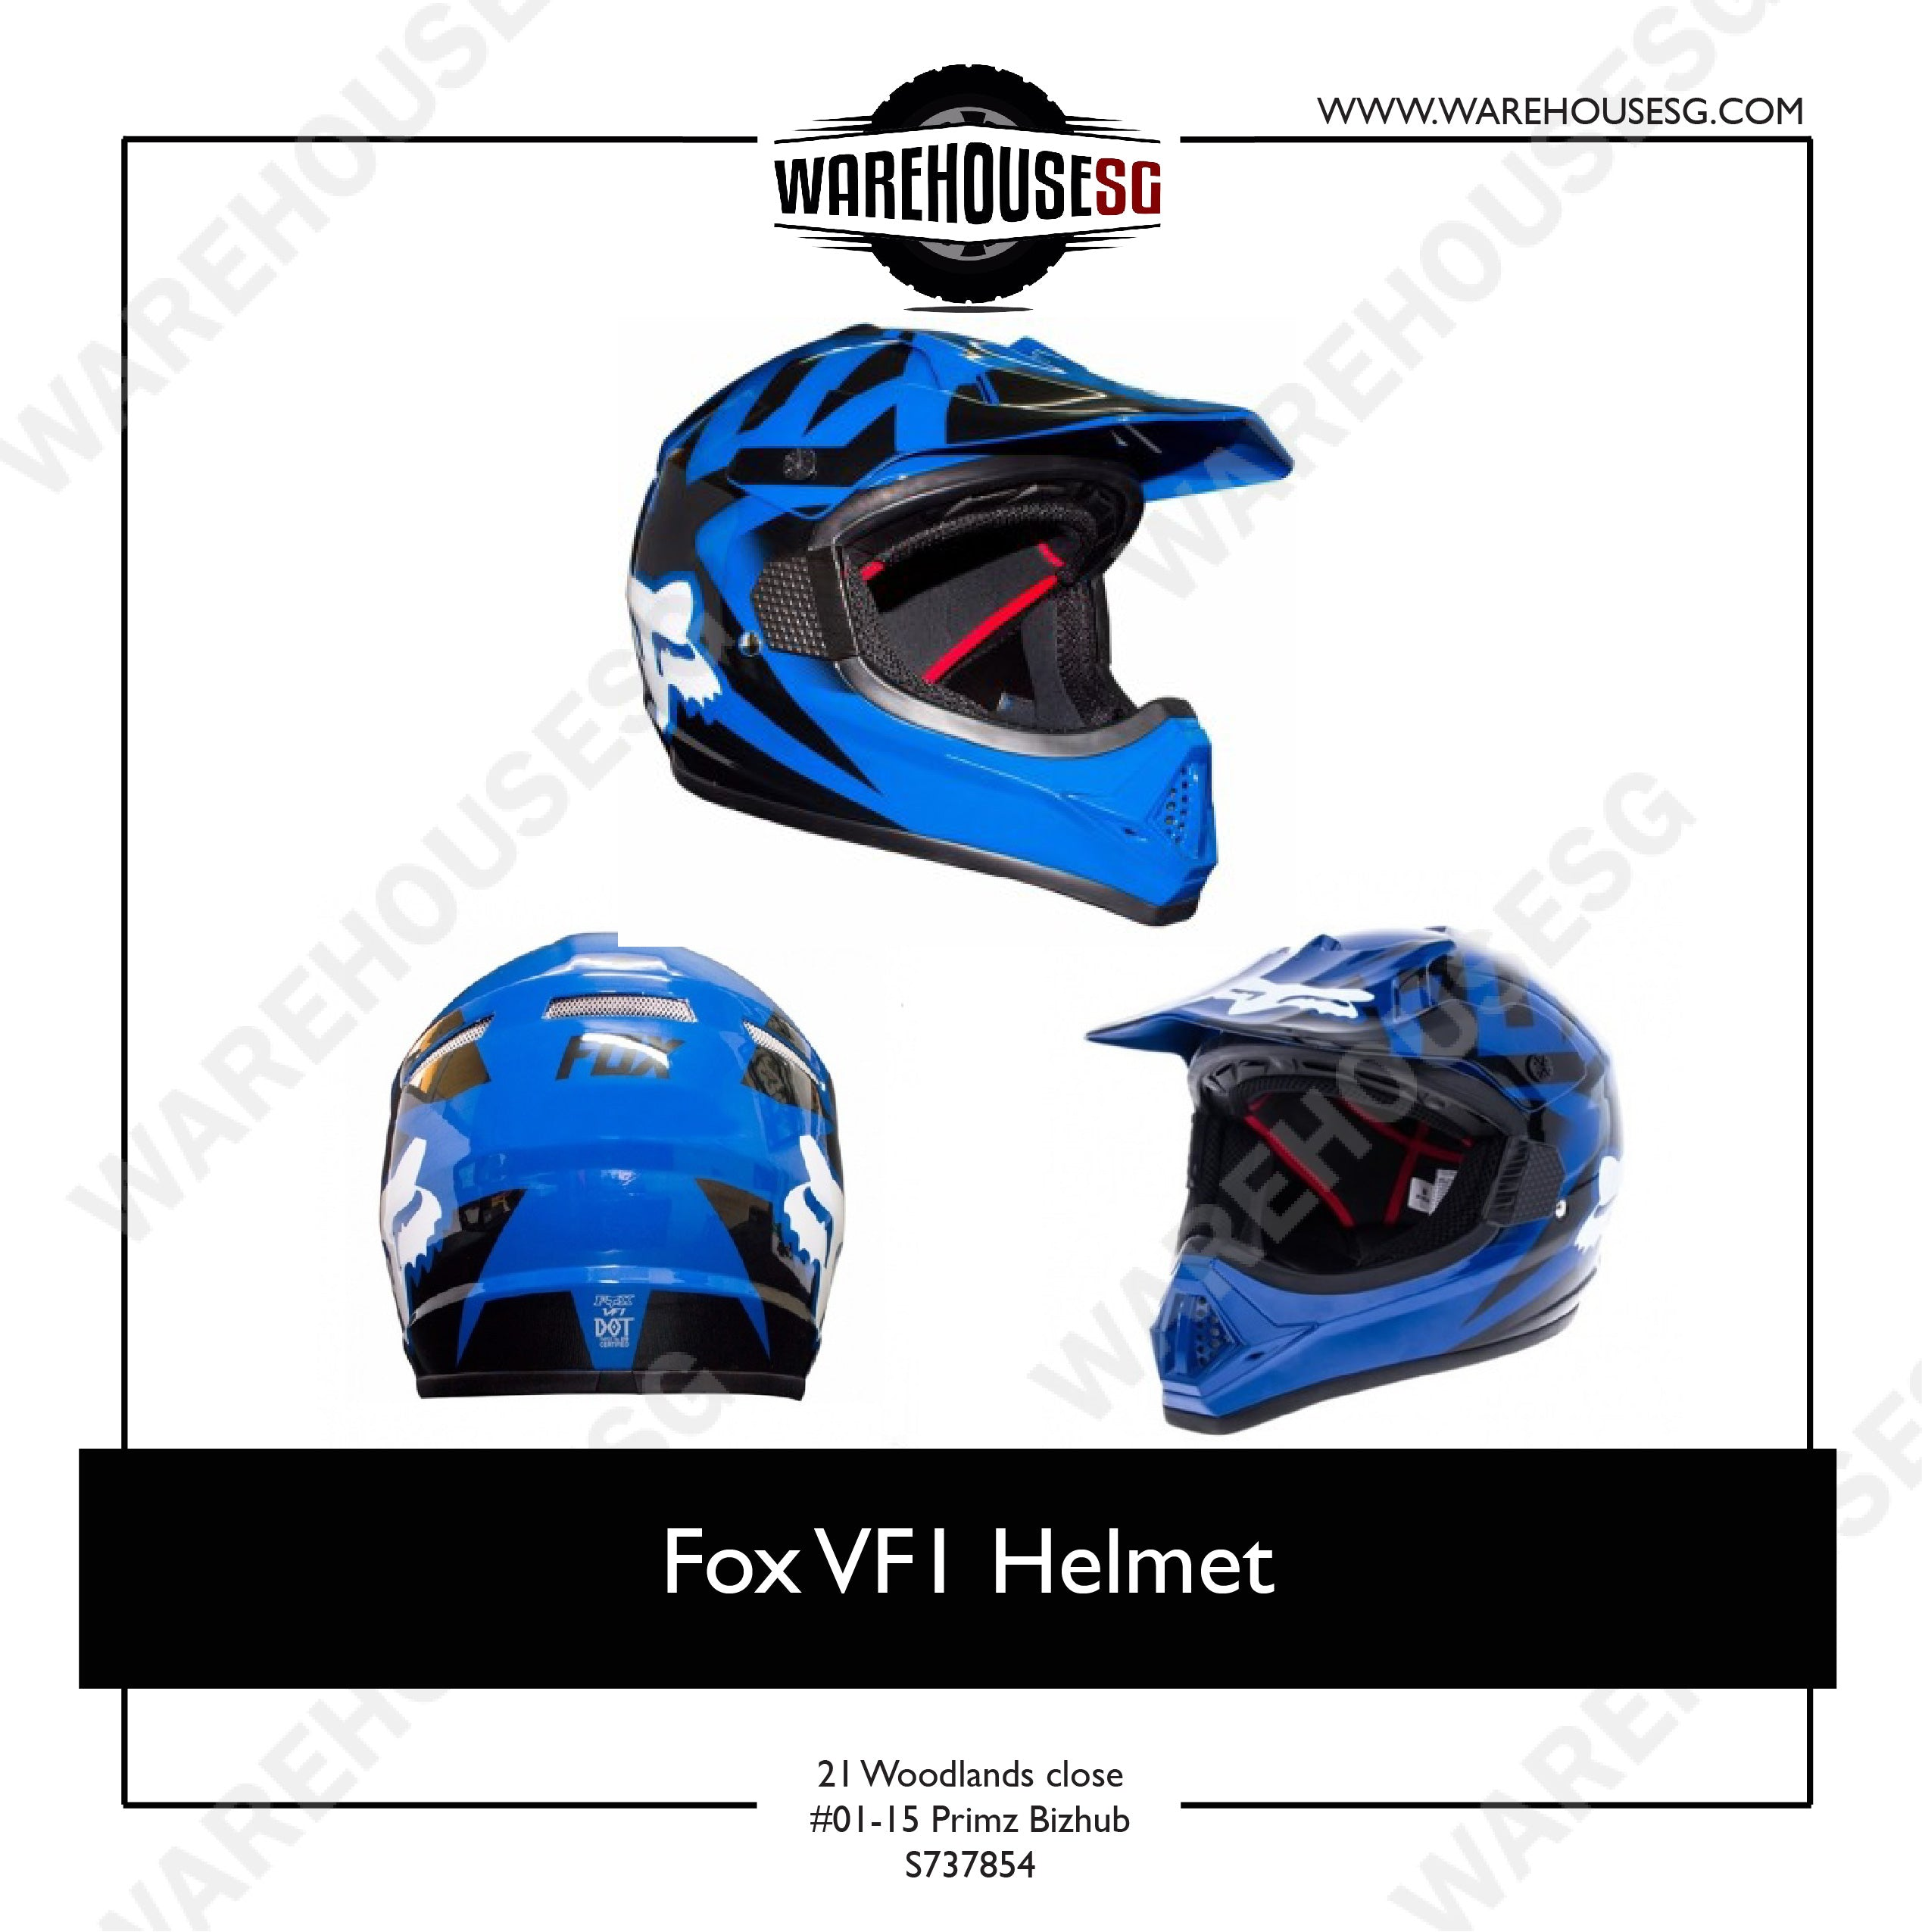 Fox VF1 Helmet